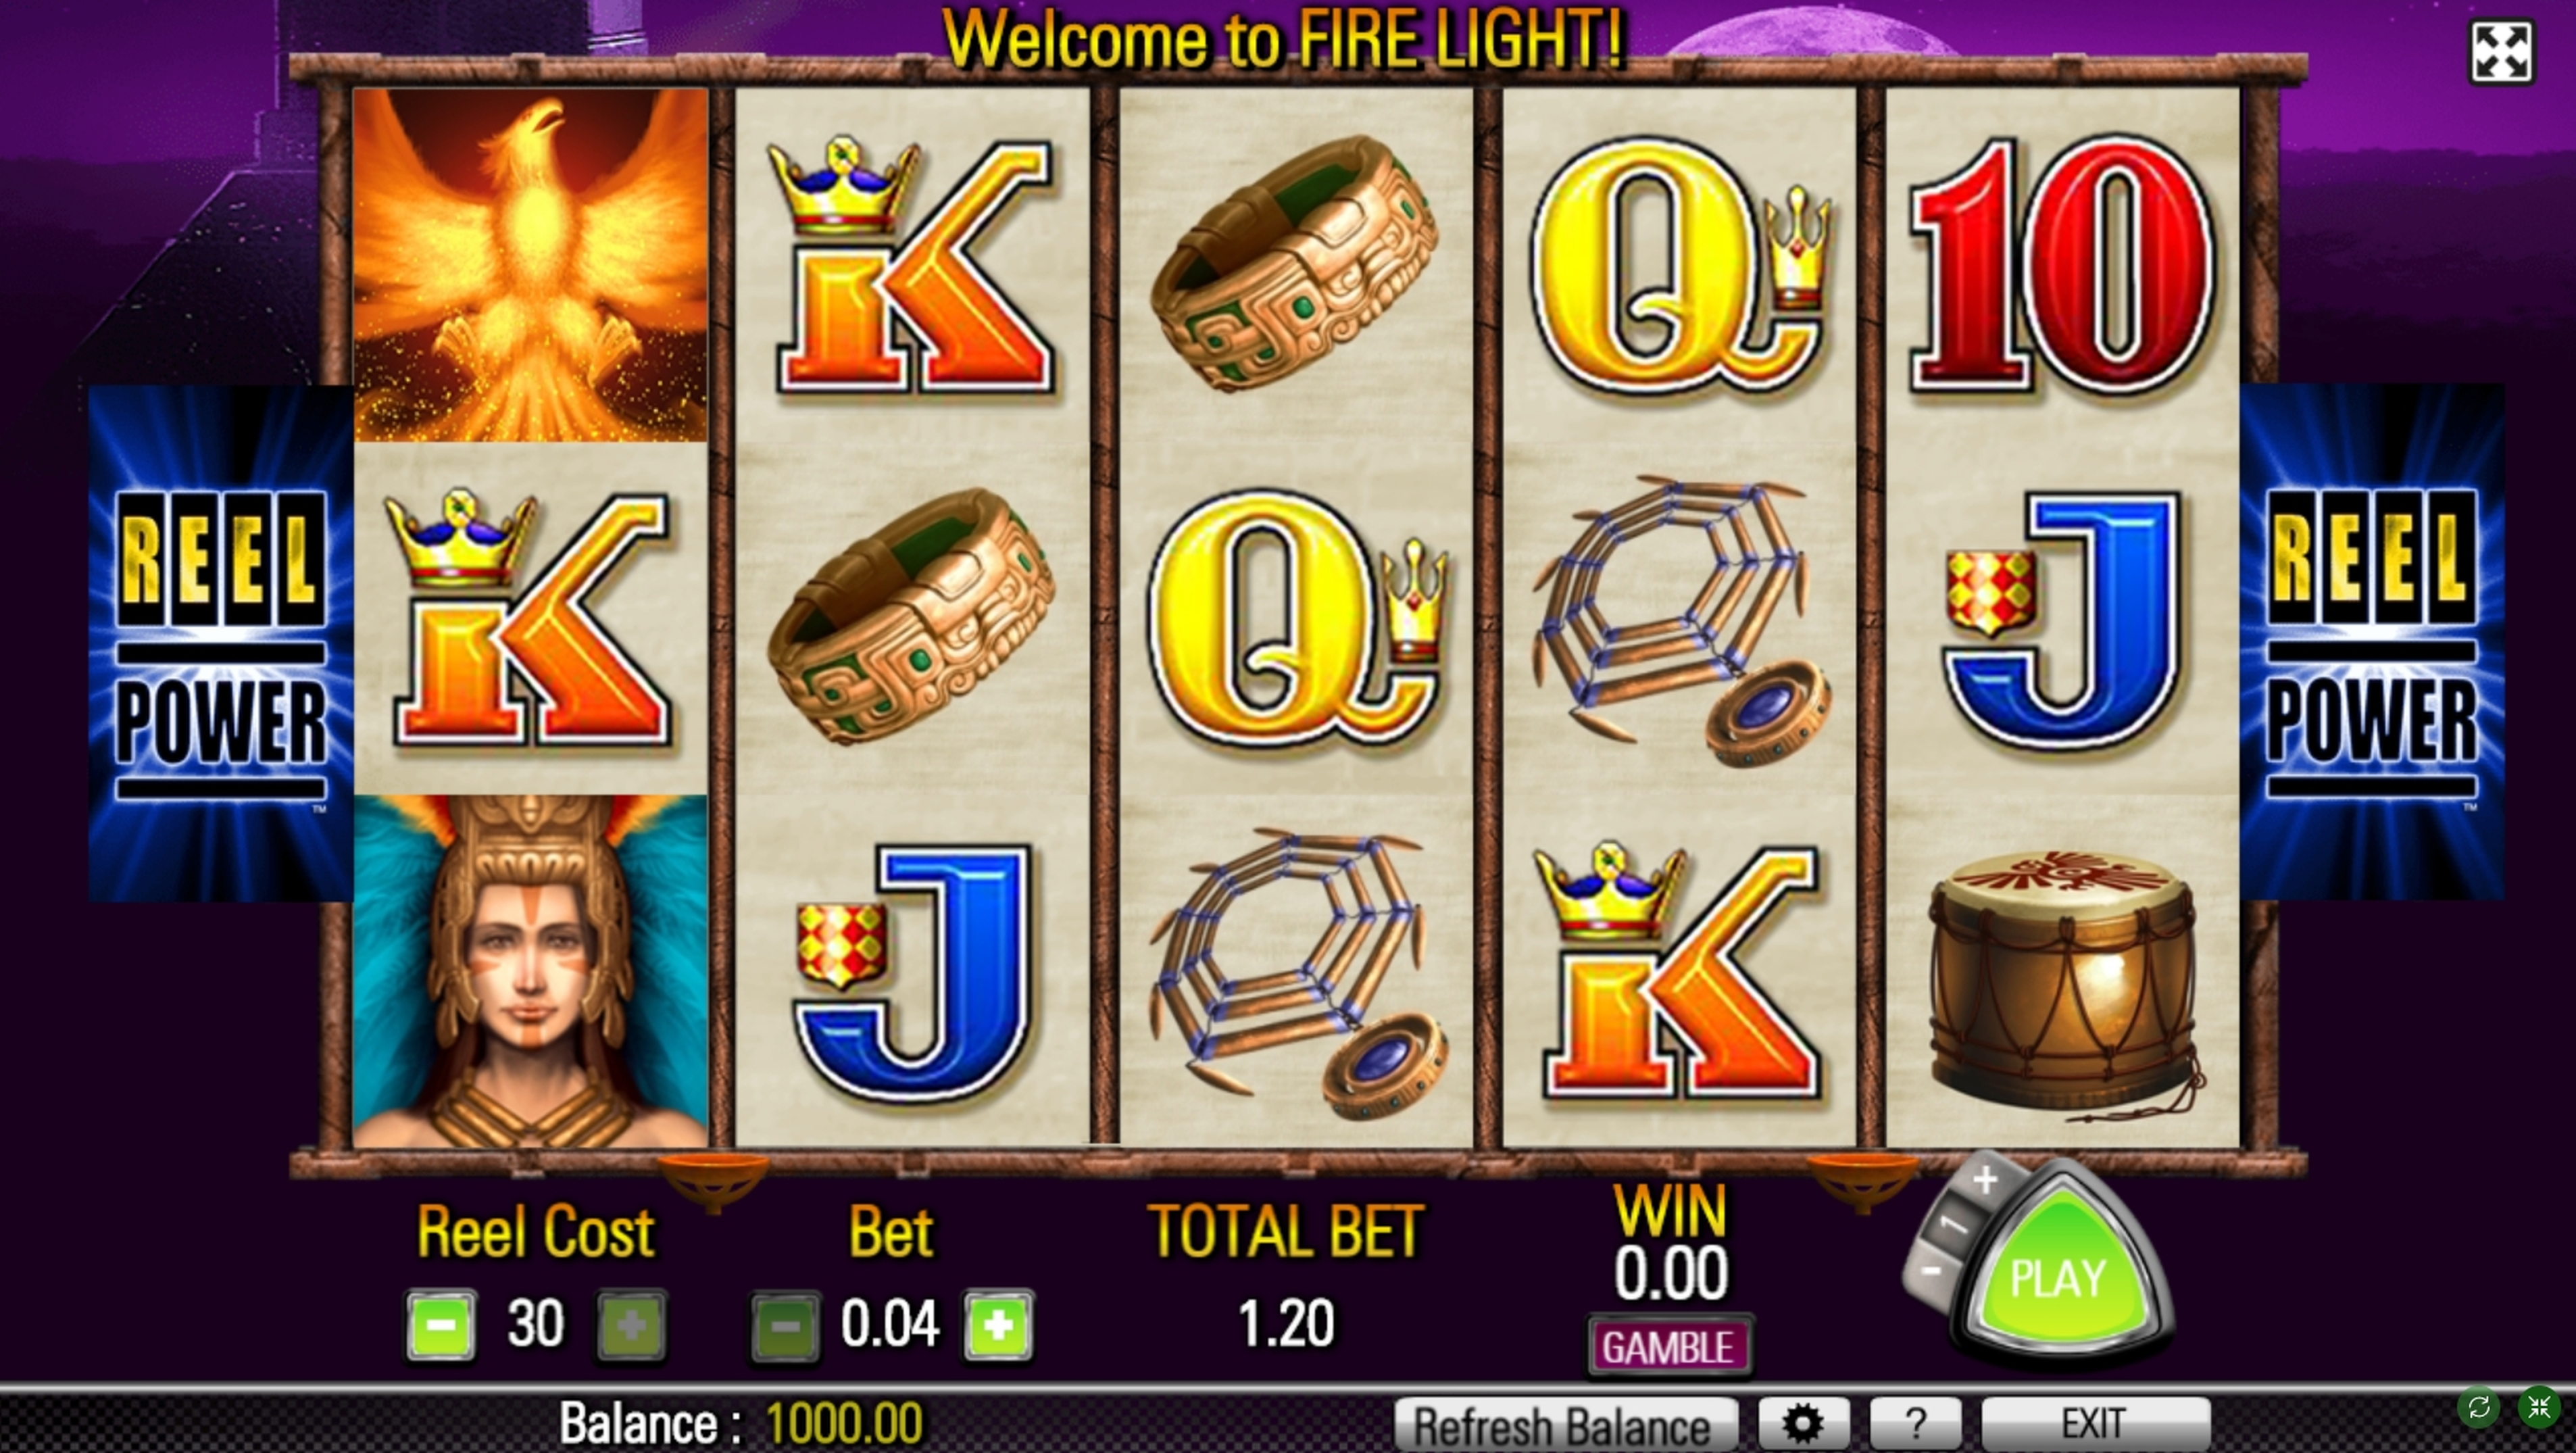 Reels in Firelight Slot Game by Aristocrat